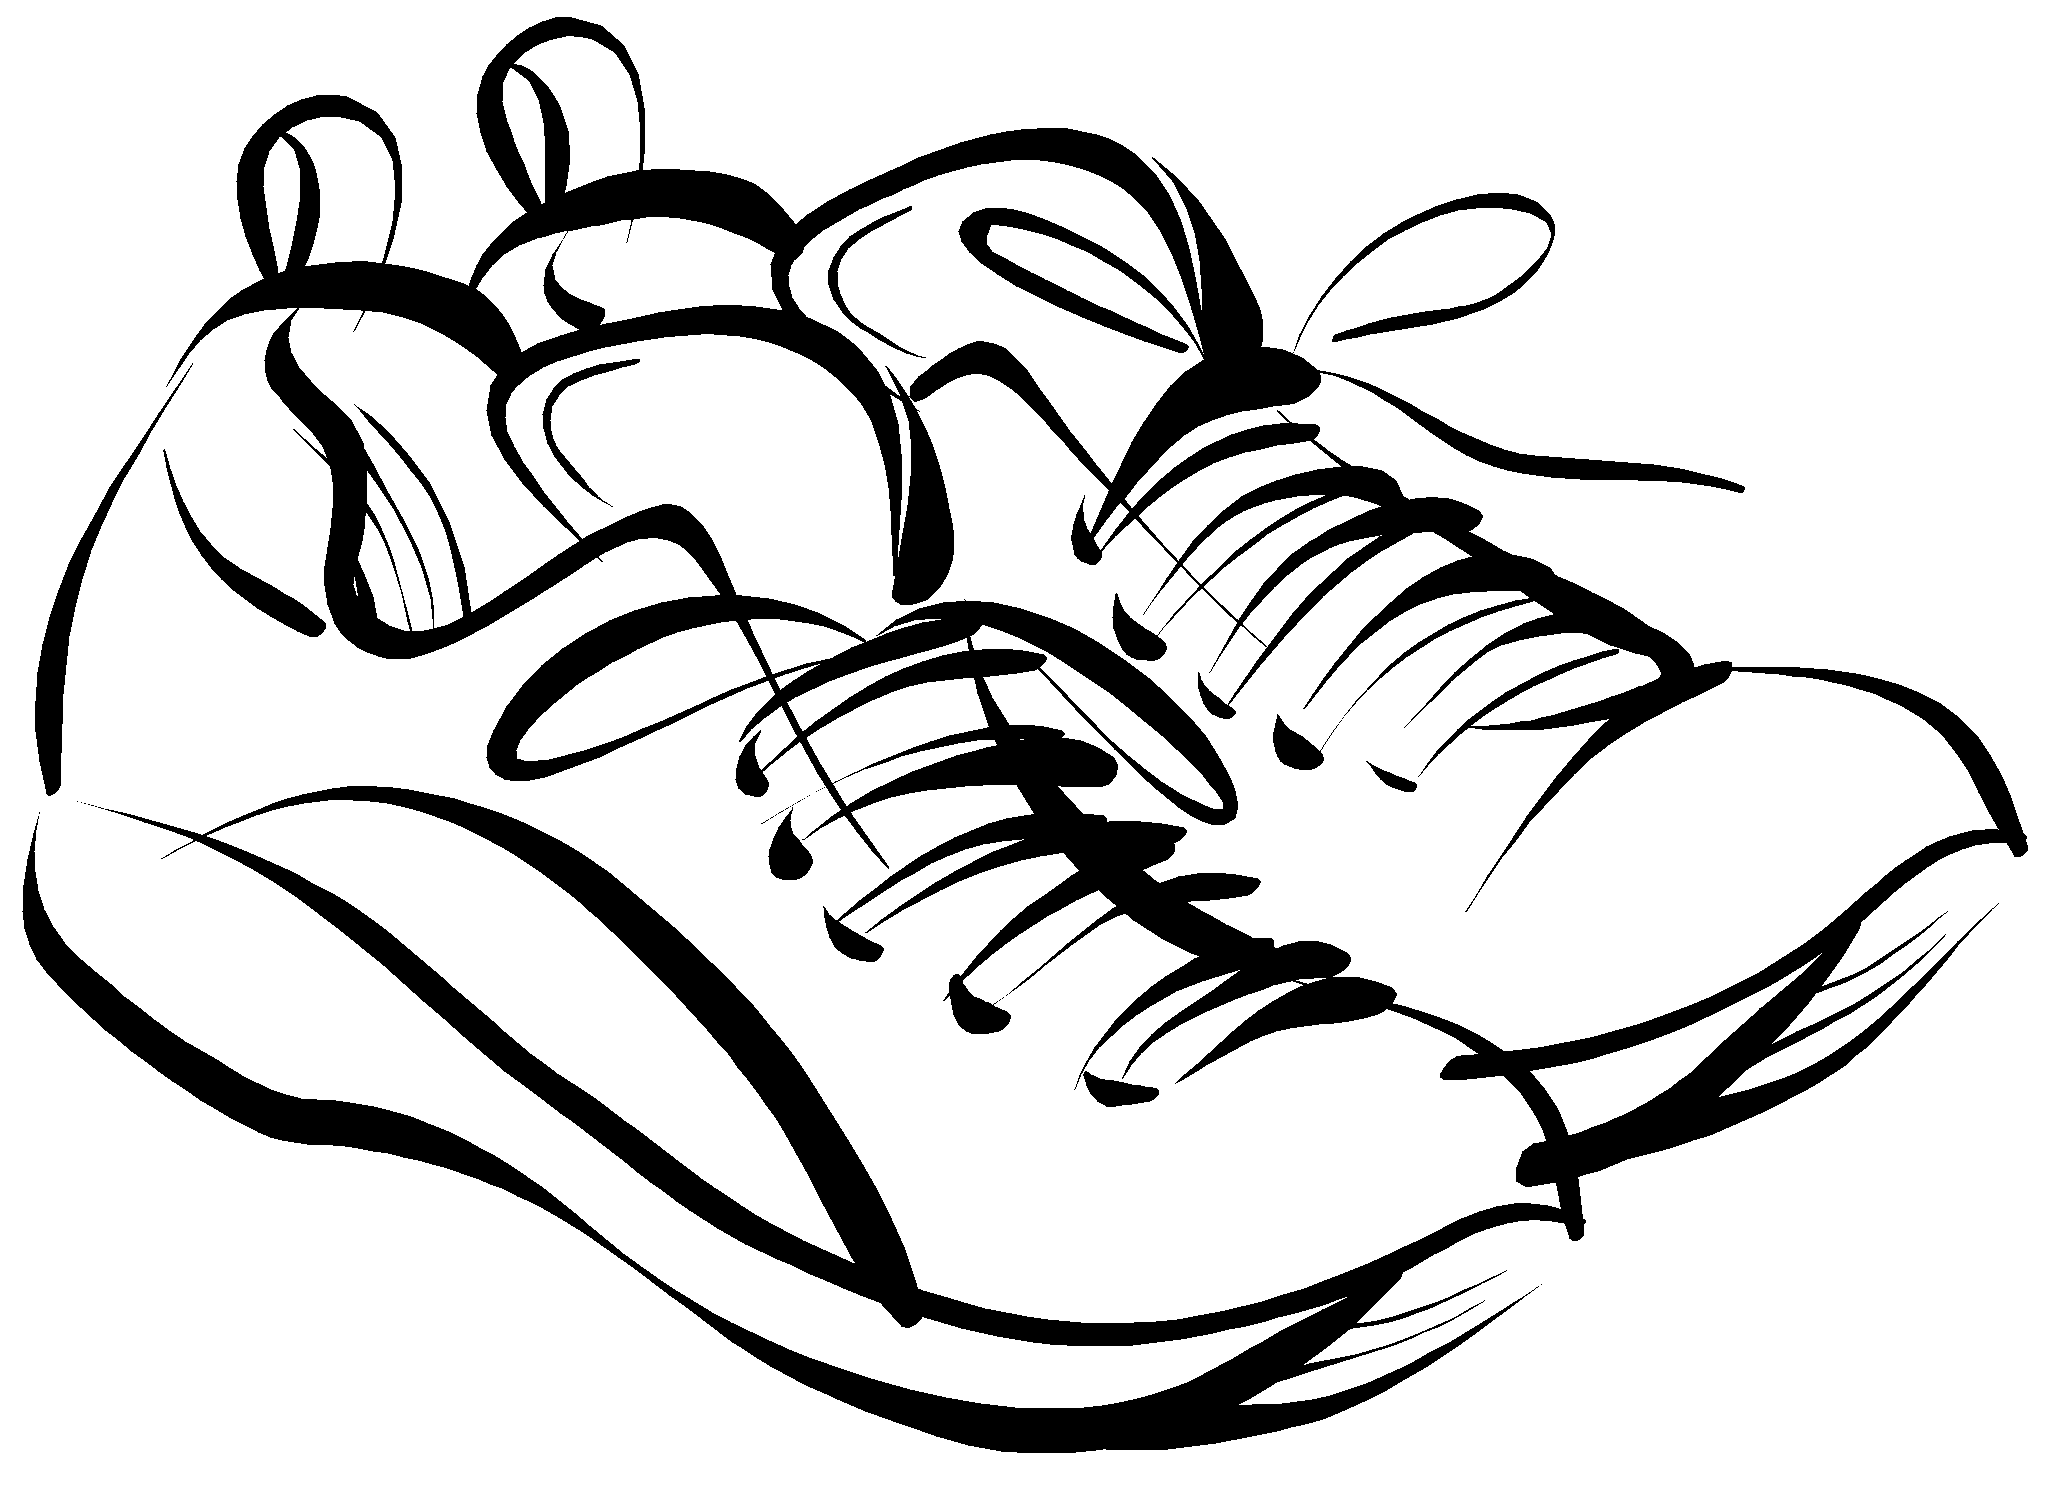 Cross country shoe clipart clipart royalty free stock 28+ Collection of Running Shoe Clipart Free | High quality, free ... clipart royalty free stock